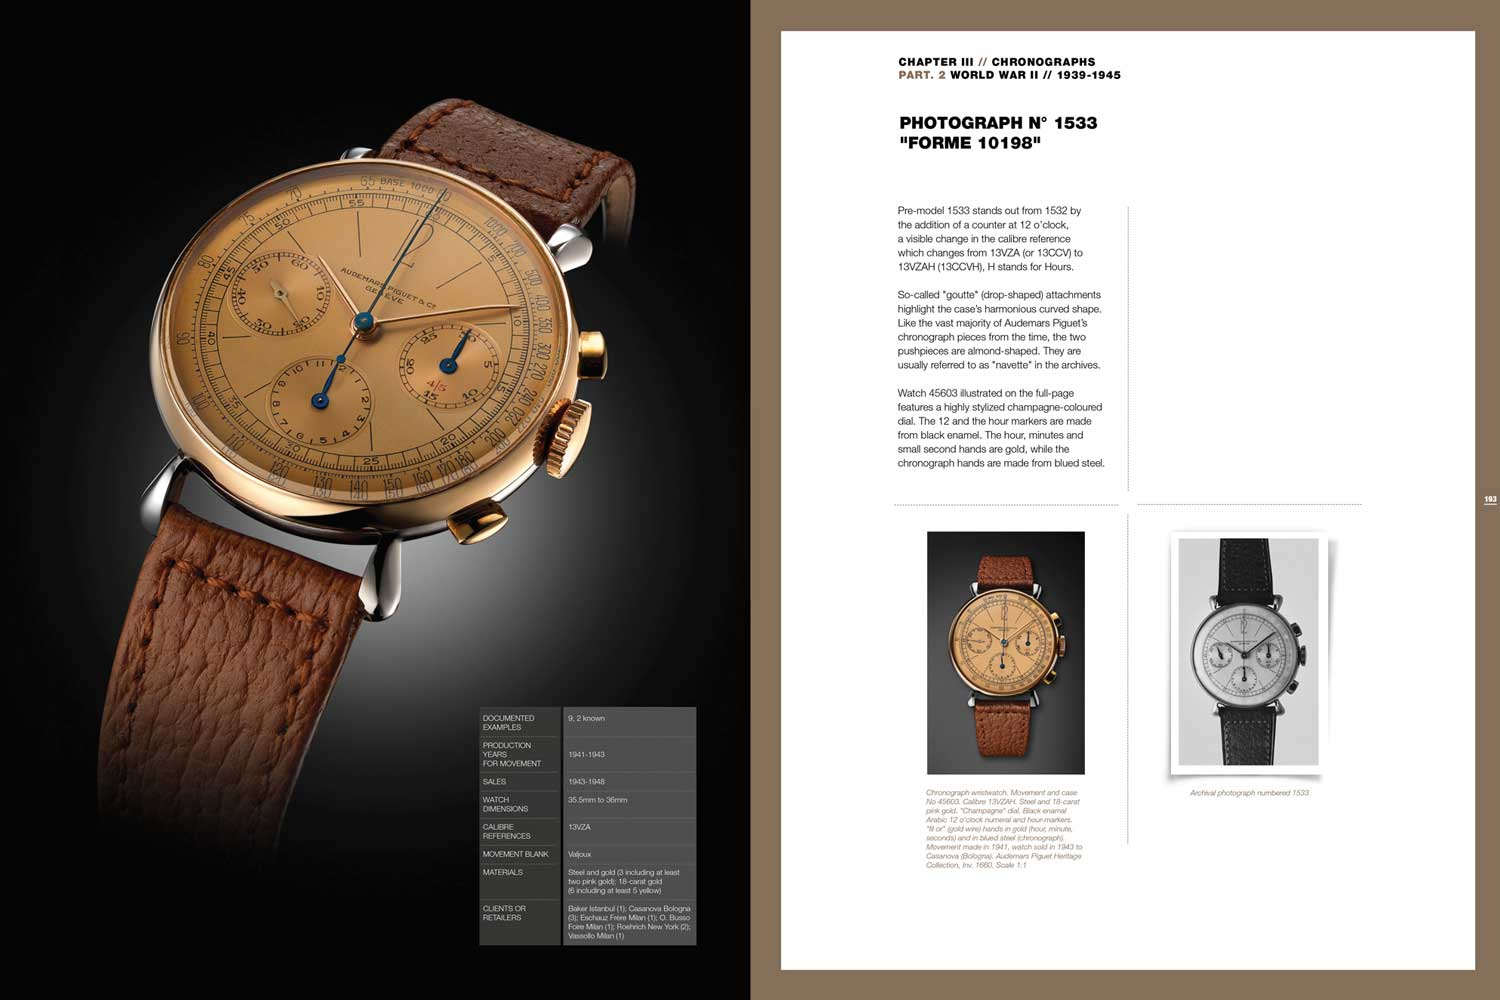 A page from the book showing the Ref. 1533, which served as the starting point for the newly released [Re]master01 self-winding flyback chronograph.